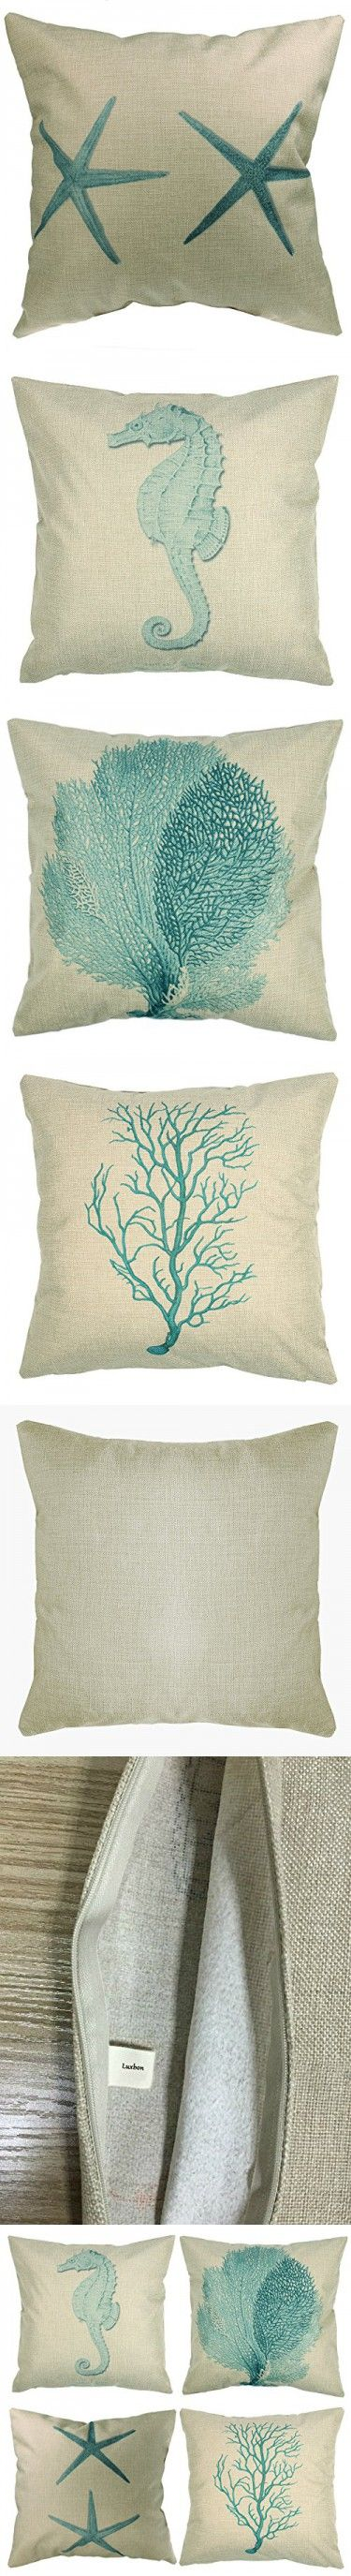 1000+ ideas about Nautical Cushions on Pinterest Nautical Cushion Covers, Cushions and Pillows